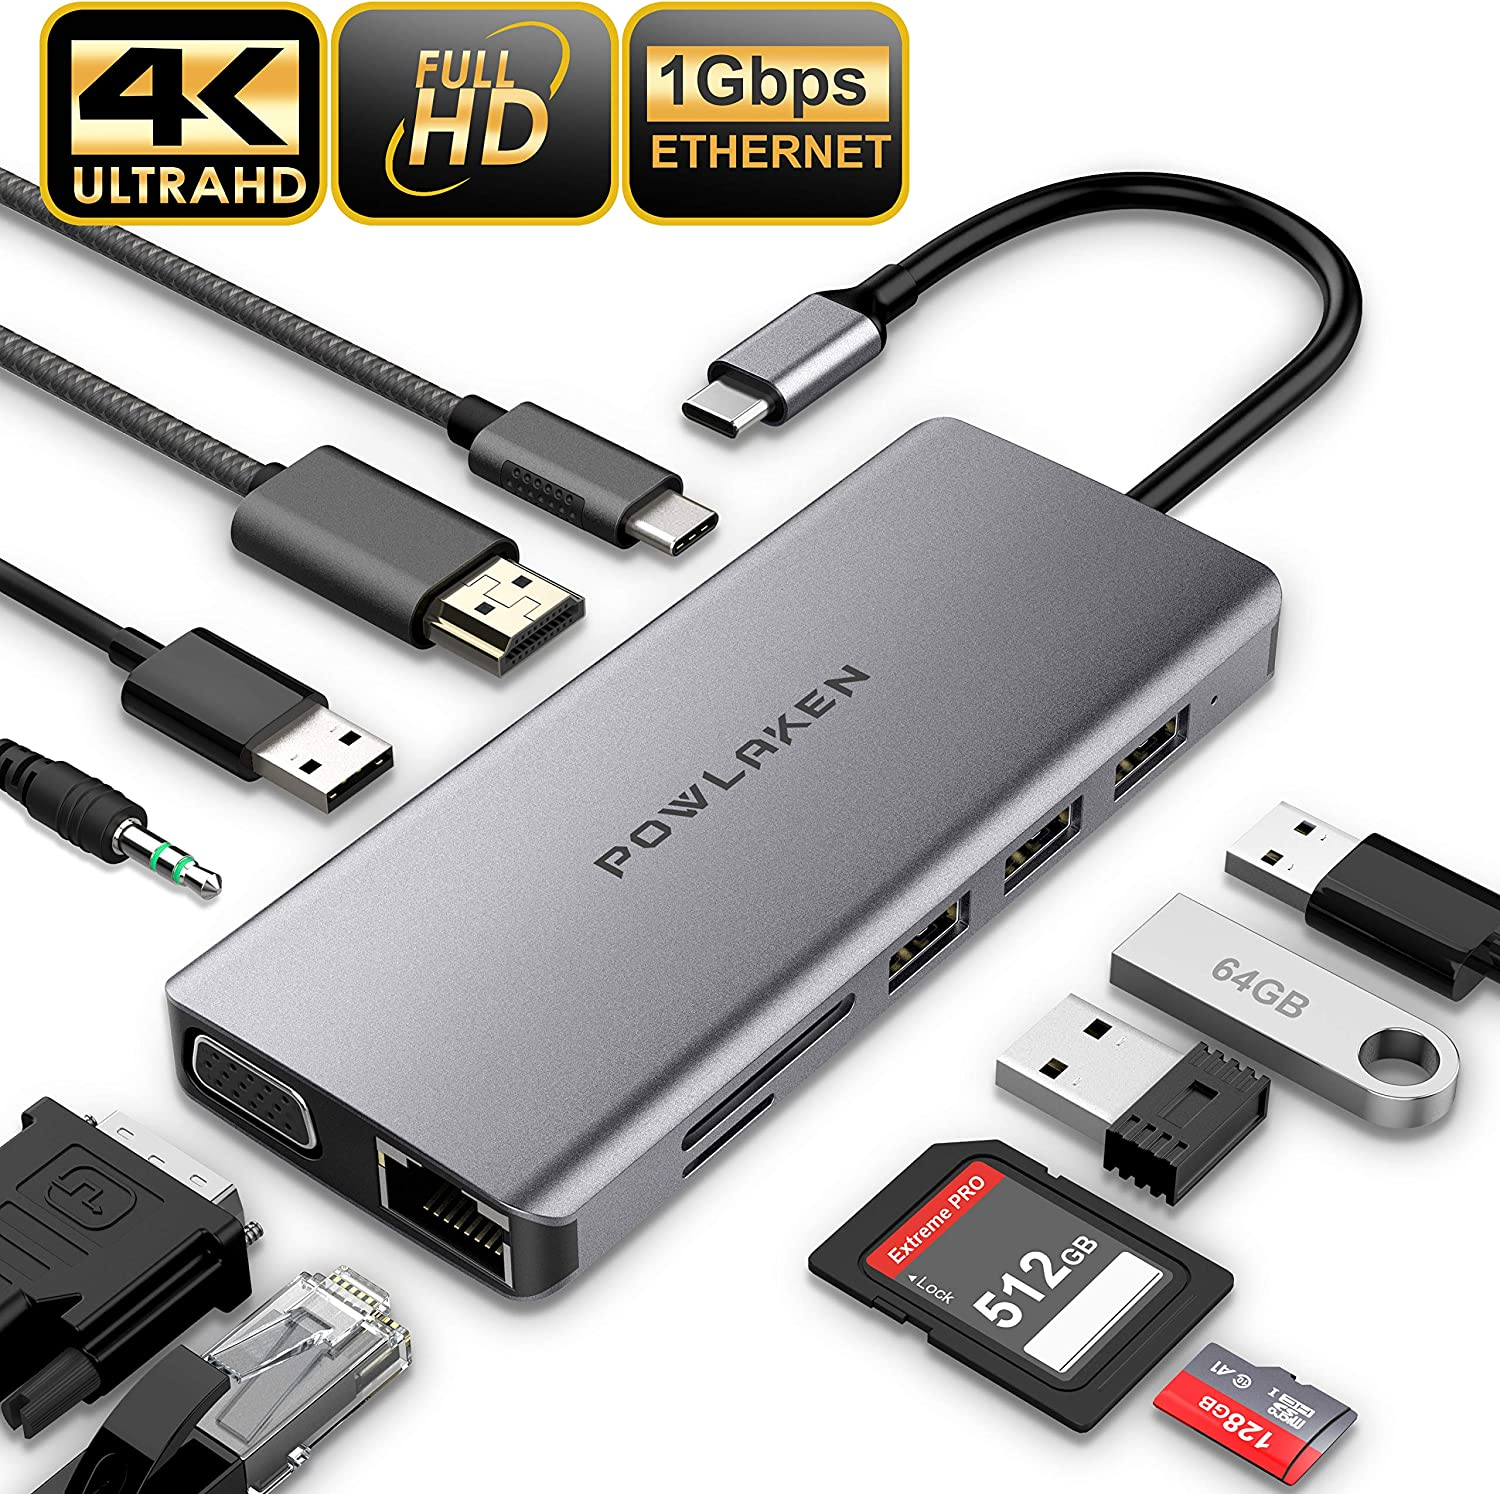 Updated 2019 Version USB C Hub, POWLAKEN 11 in 1 USB C Adapter with Ethernet, 4K USB C to HDMI, VGA, 2 USB3.0 2 USB2.0 PD, SD TF Card Reader, Audio, Compatible Mac Pro and Other Type C Laptops